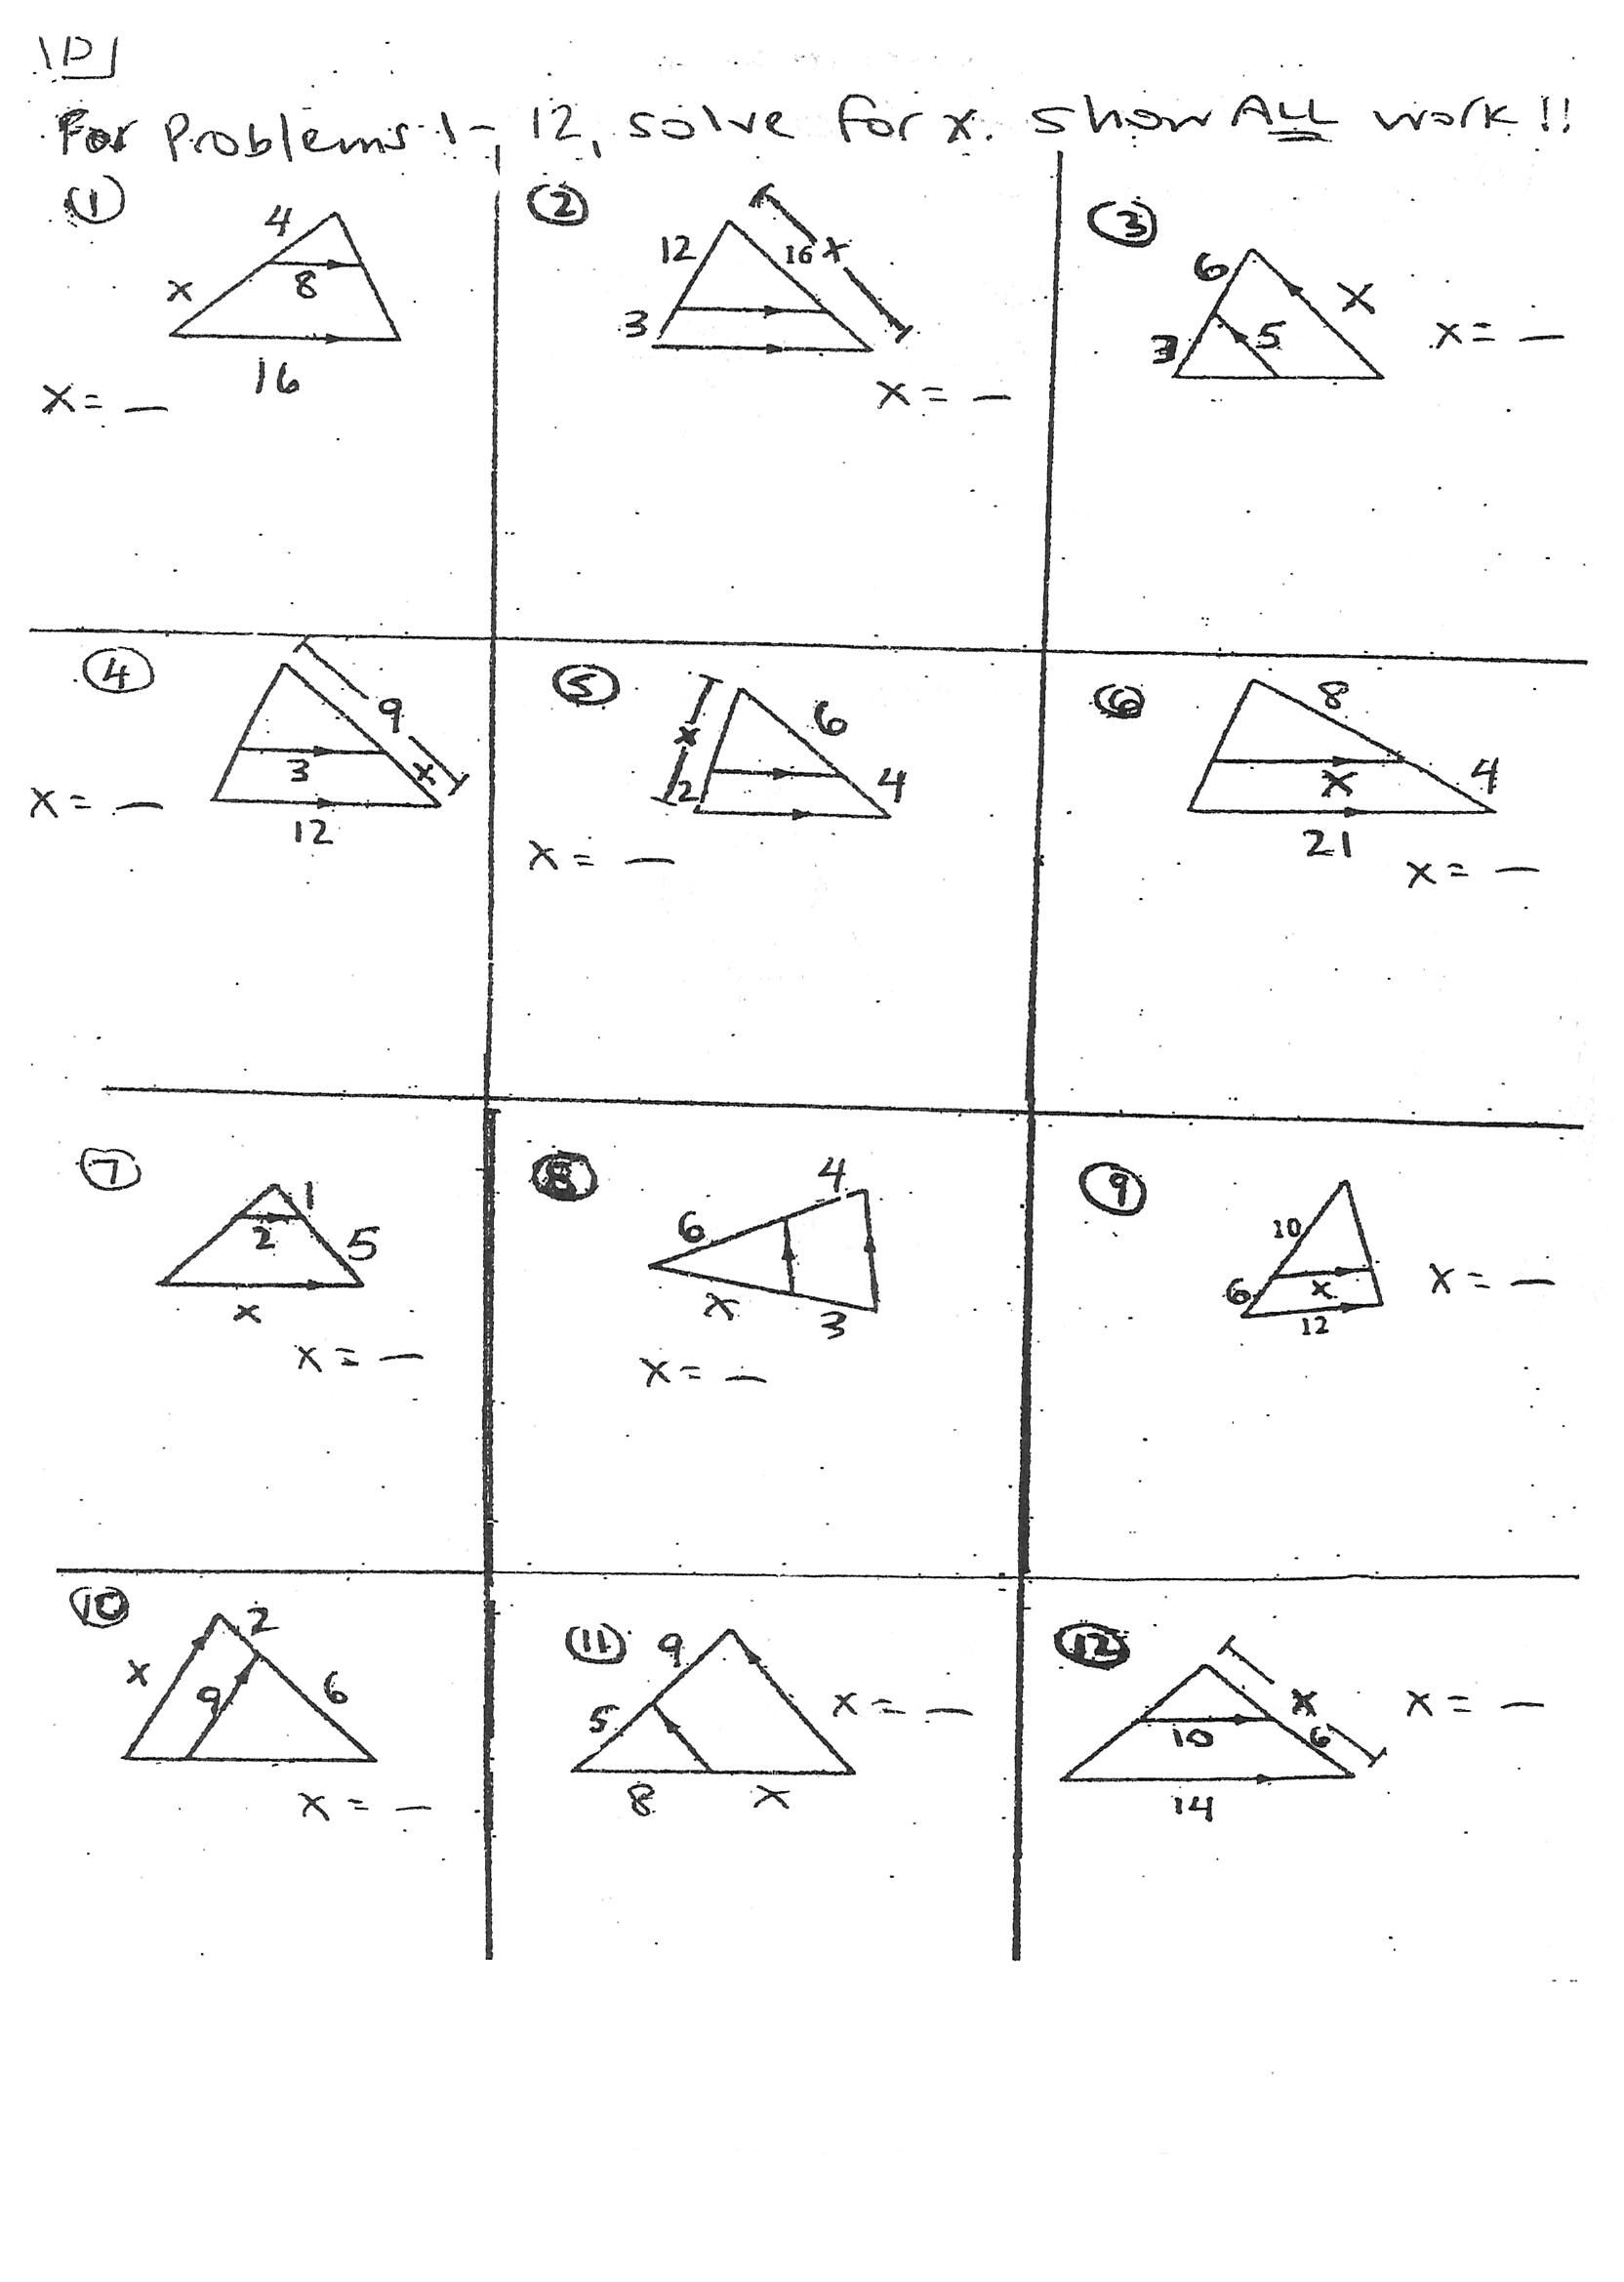 Geometry Similar Triangles Worksheet - Promotiontablecovers [ 2338 x 1664 Pixel ]